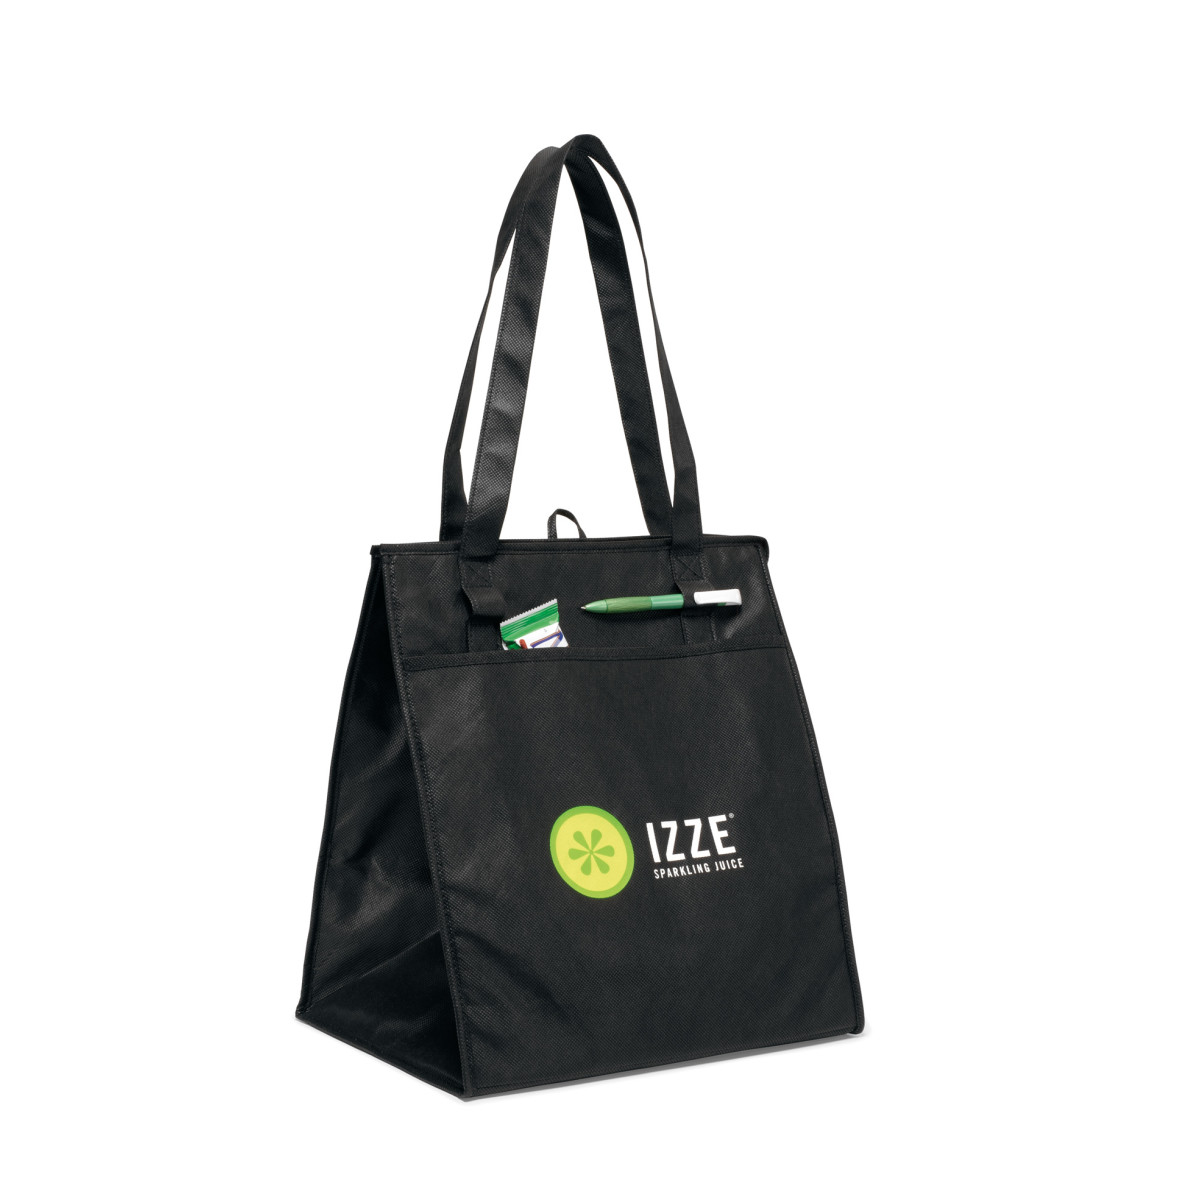 Gemline 9163 - Deluxe Insulated Grocery Shopper